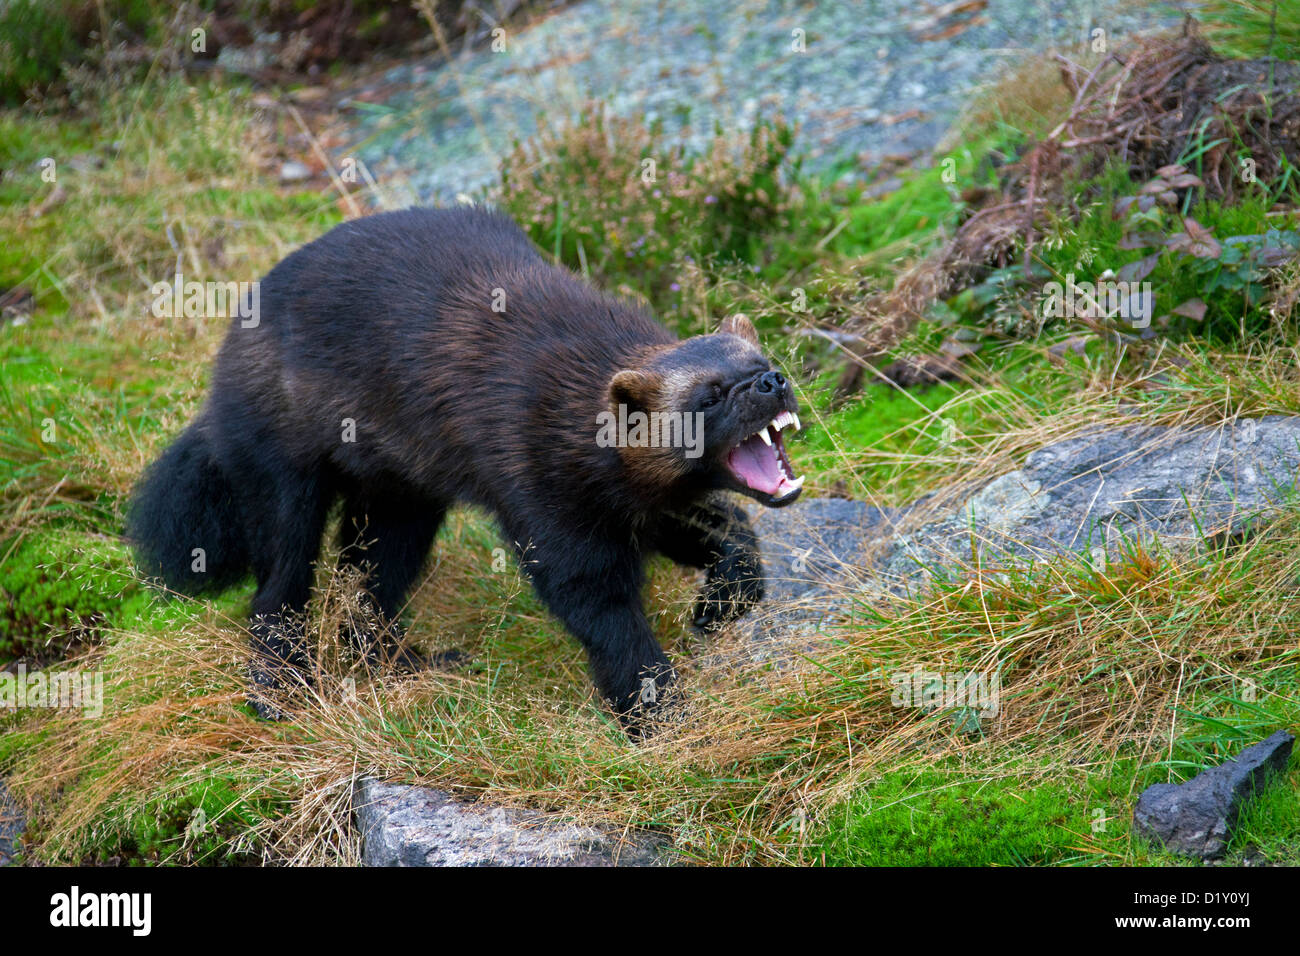 Aggressive Wolverine (Gulo gulo) showing teeth in a menacing threat display on the subarctic tundra in Sweden, Scandinavia - Stock Image